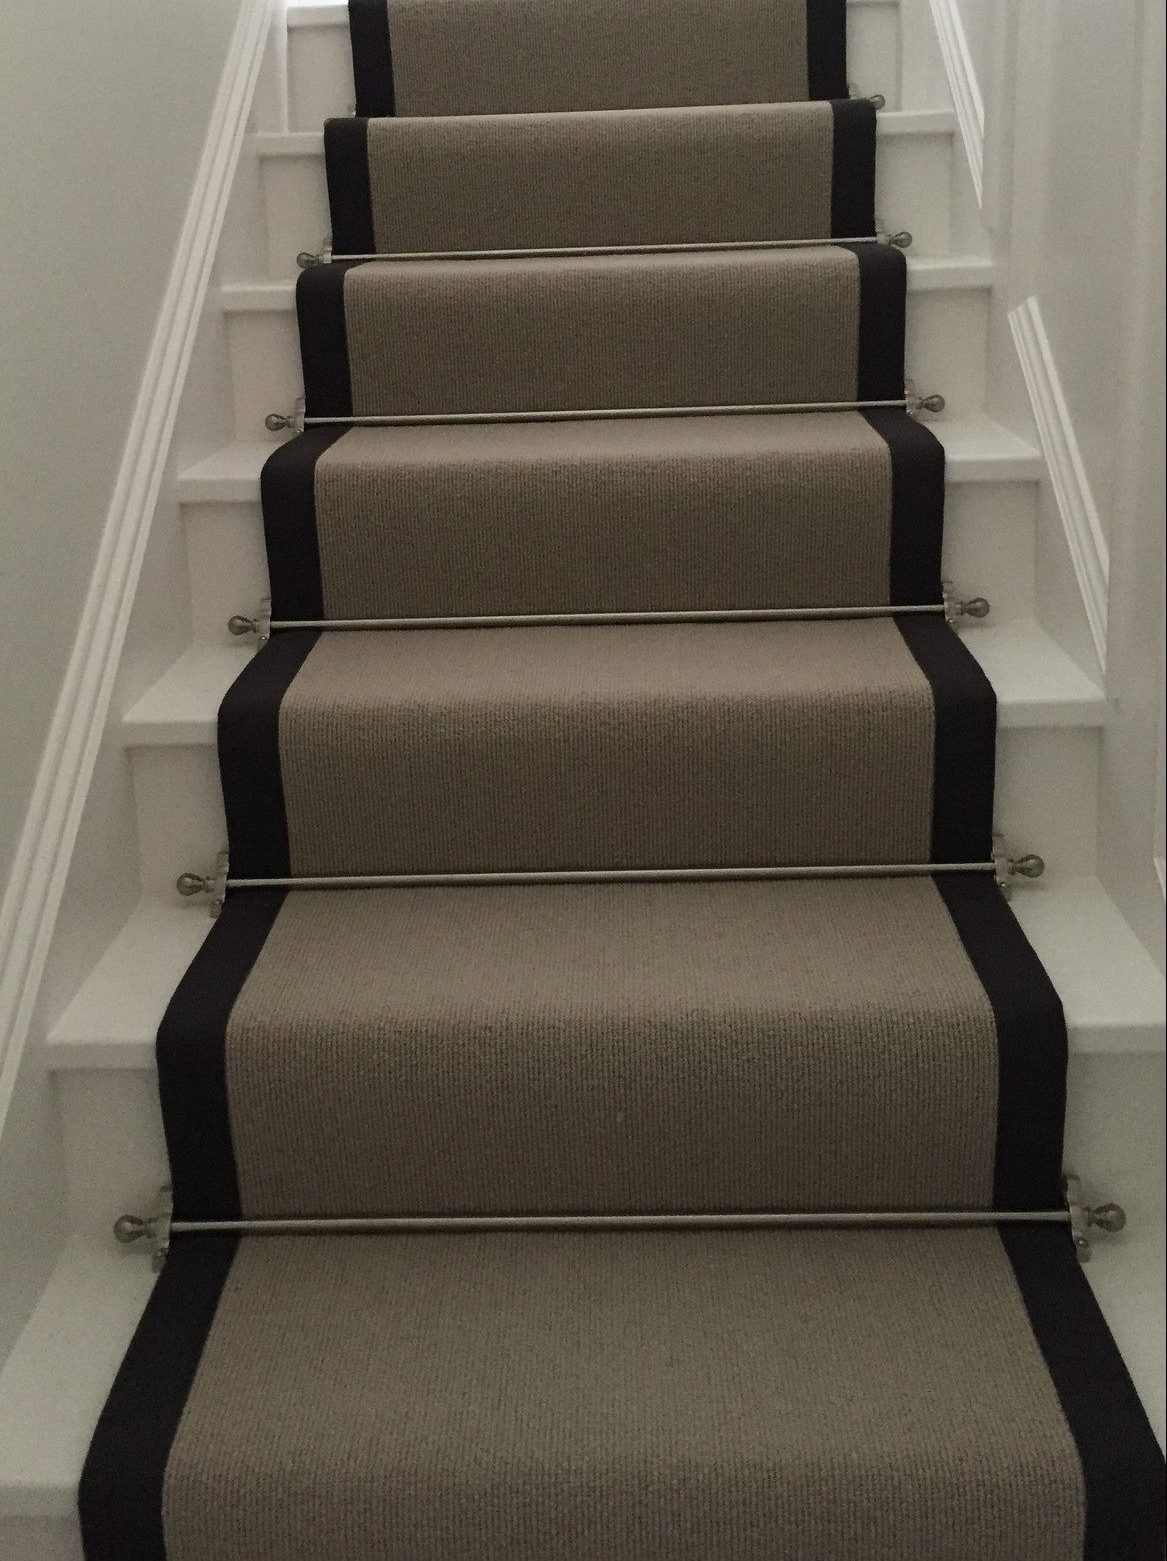 stair runner and rods